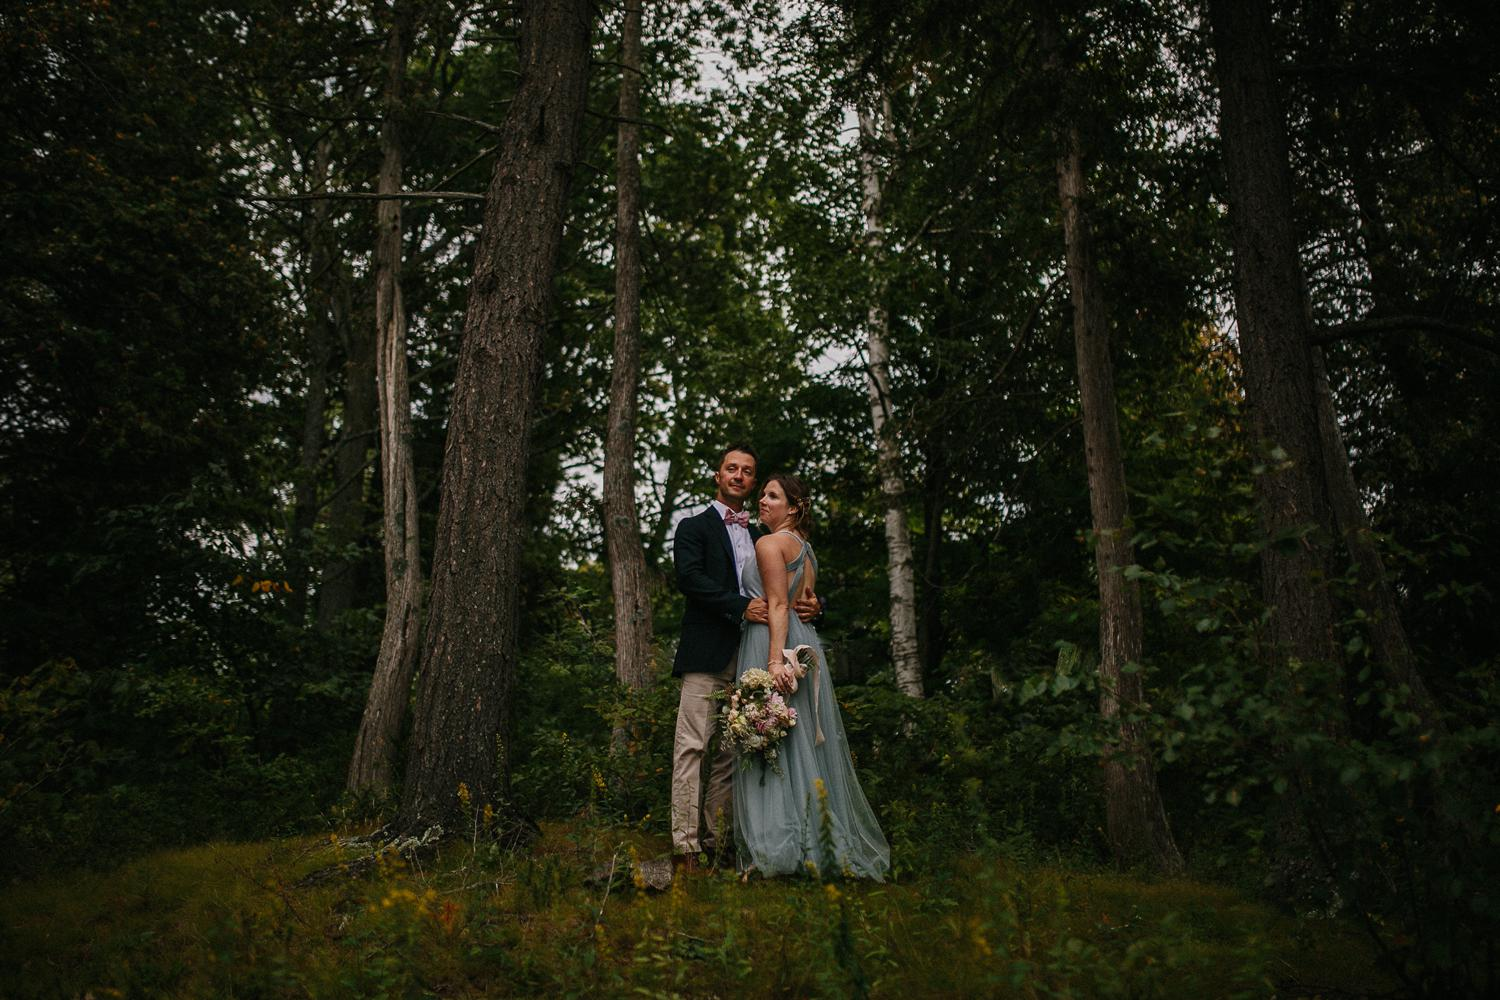 kerry ford photography - small intimate backyard rideau lake island wedding perth ontario-138.jpg